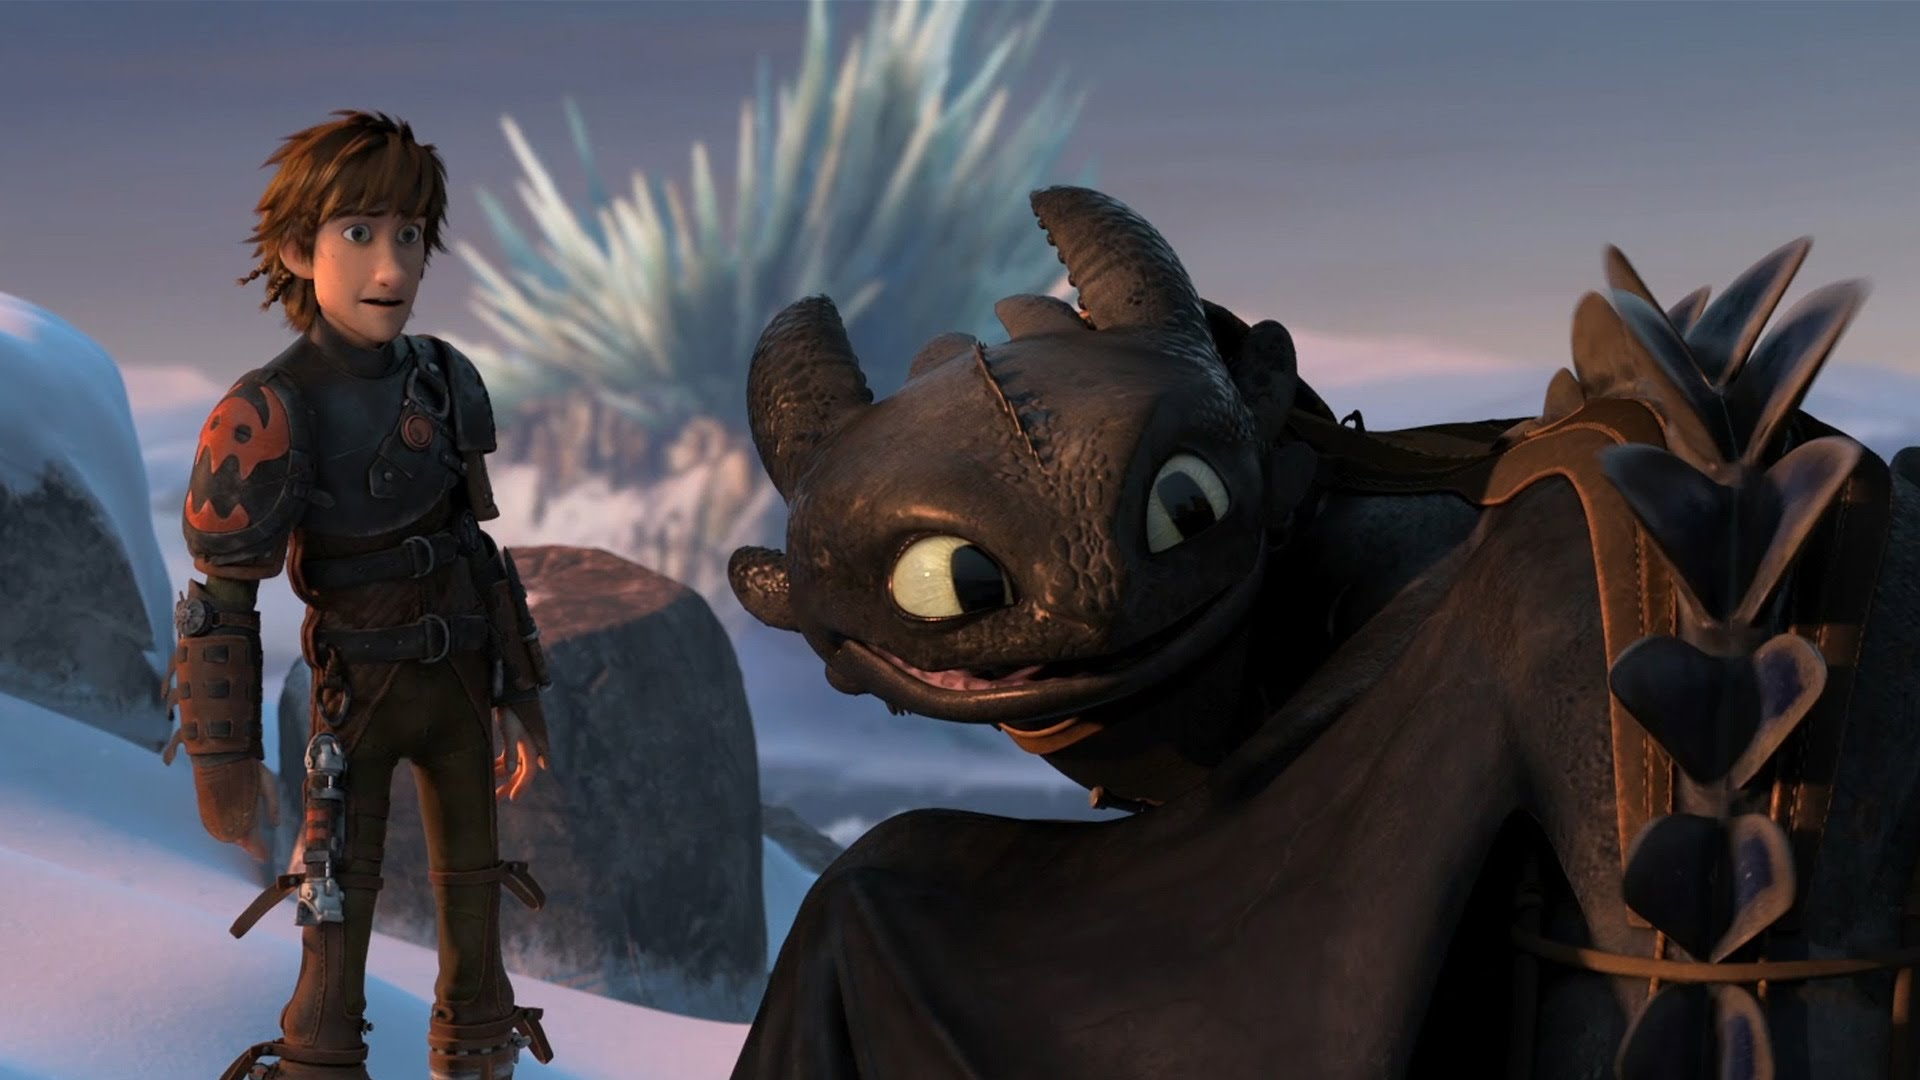 27. How to Train Your Dragon 2